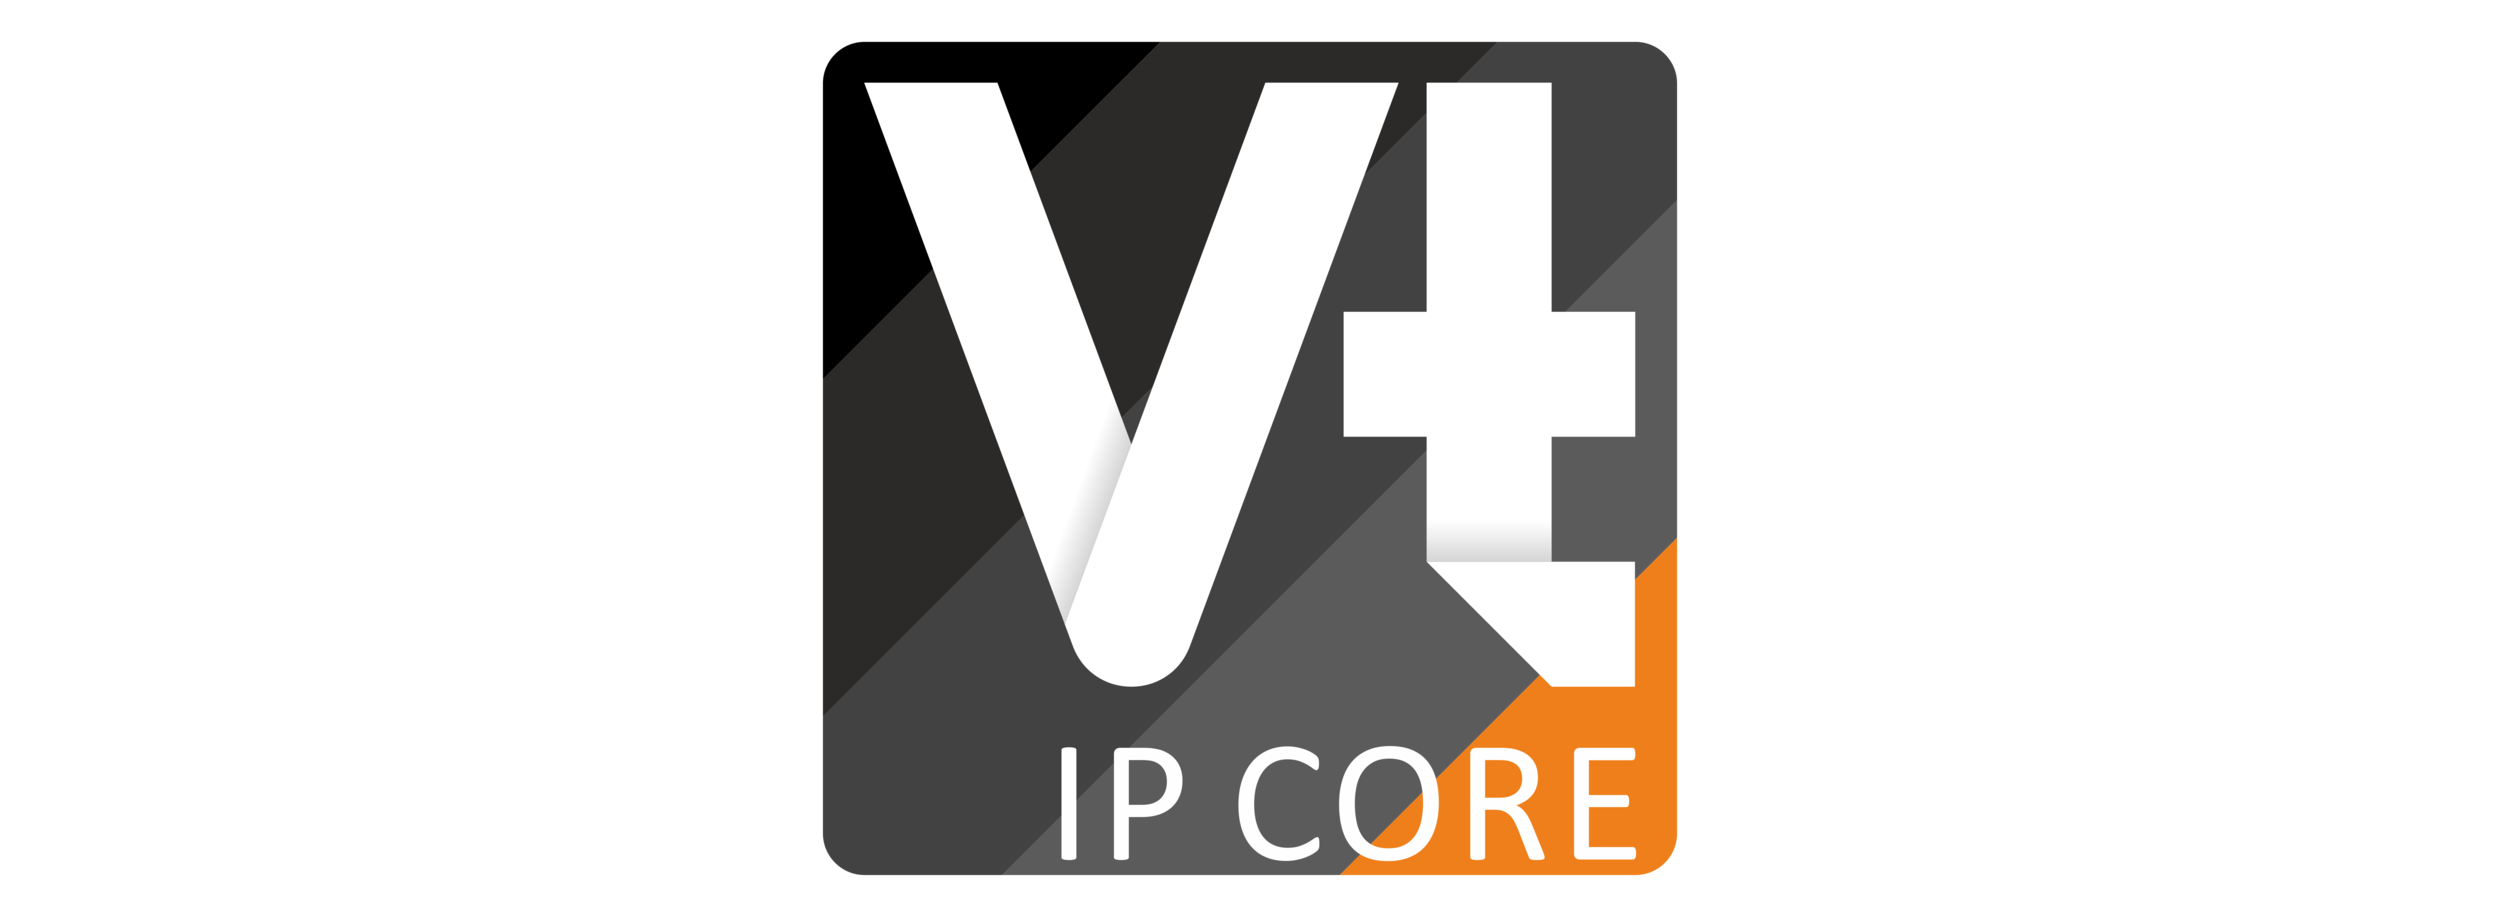 ip core wide logo.png